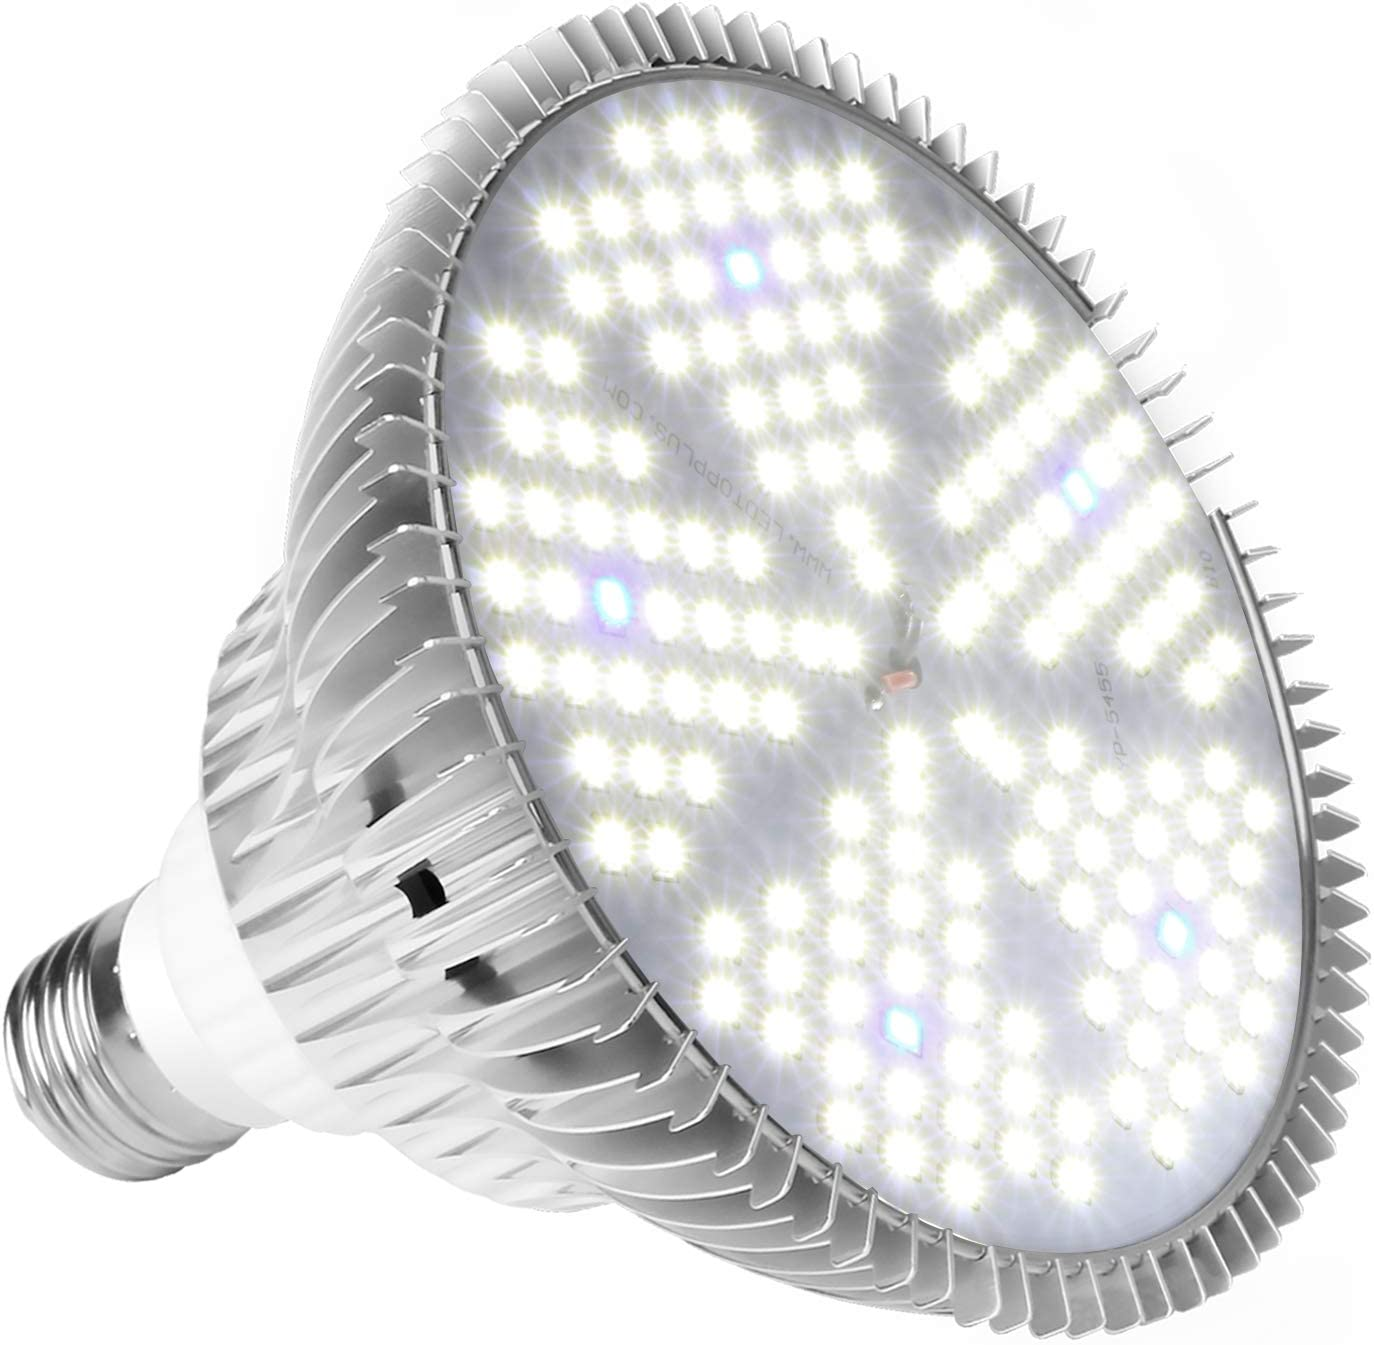 Led Plants Bulbs for Flowers Tobacco Garden Greenhouse and Organic Soil 100W Led Grow Light Bulb Pure White Plant Lights Full Spectrum for Indoor Plants Hydroponics E26//E27 150LEDs